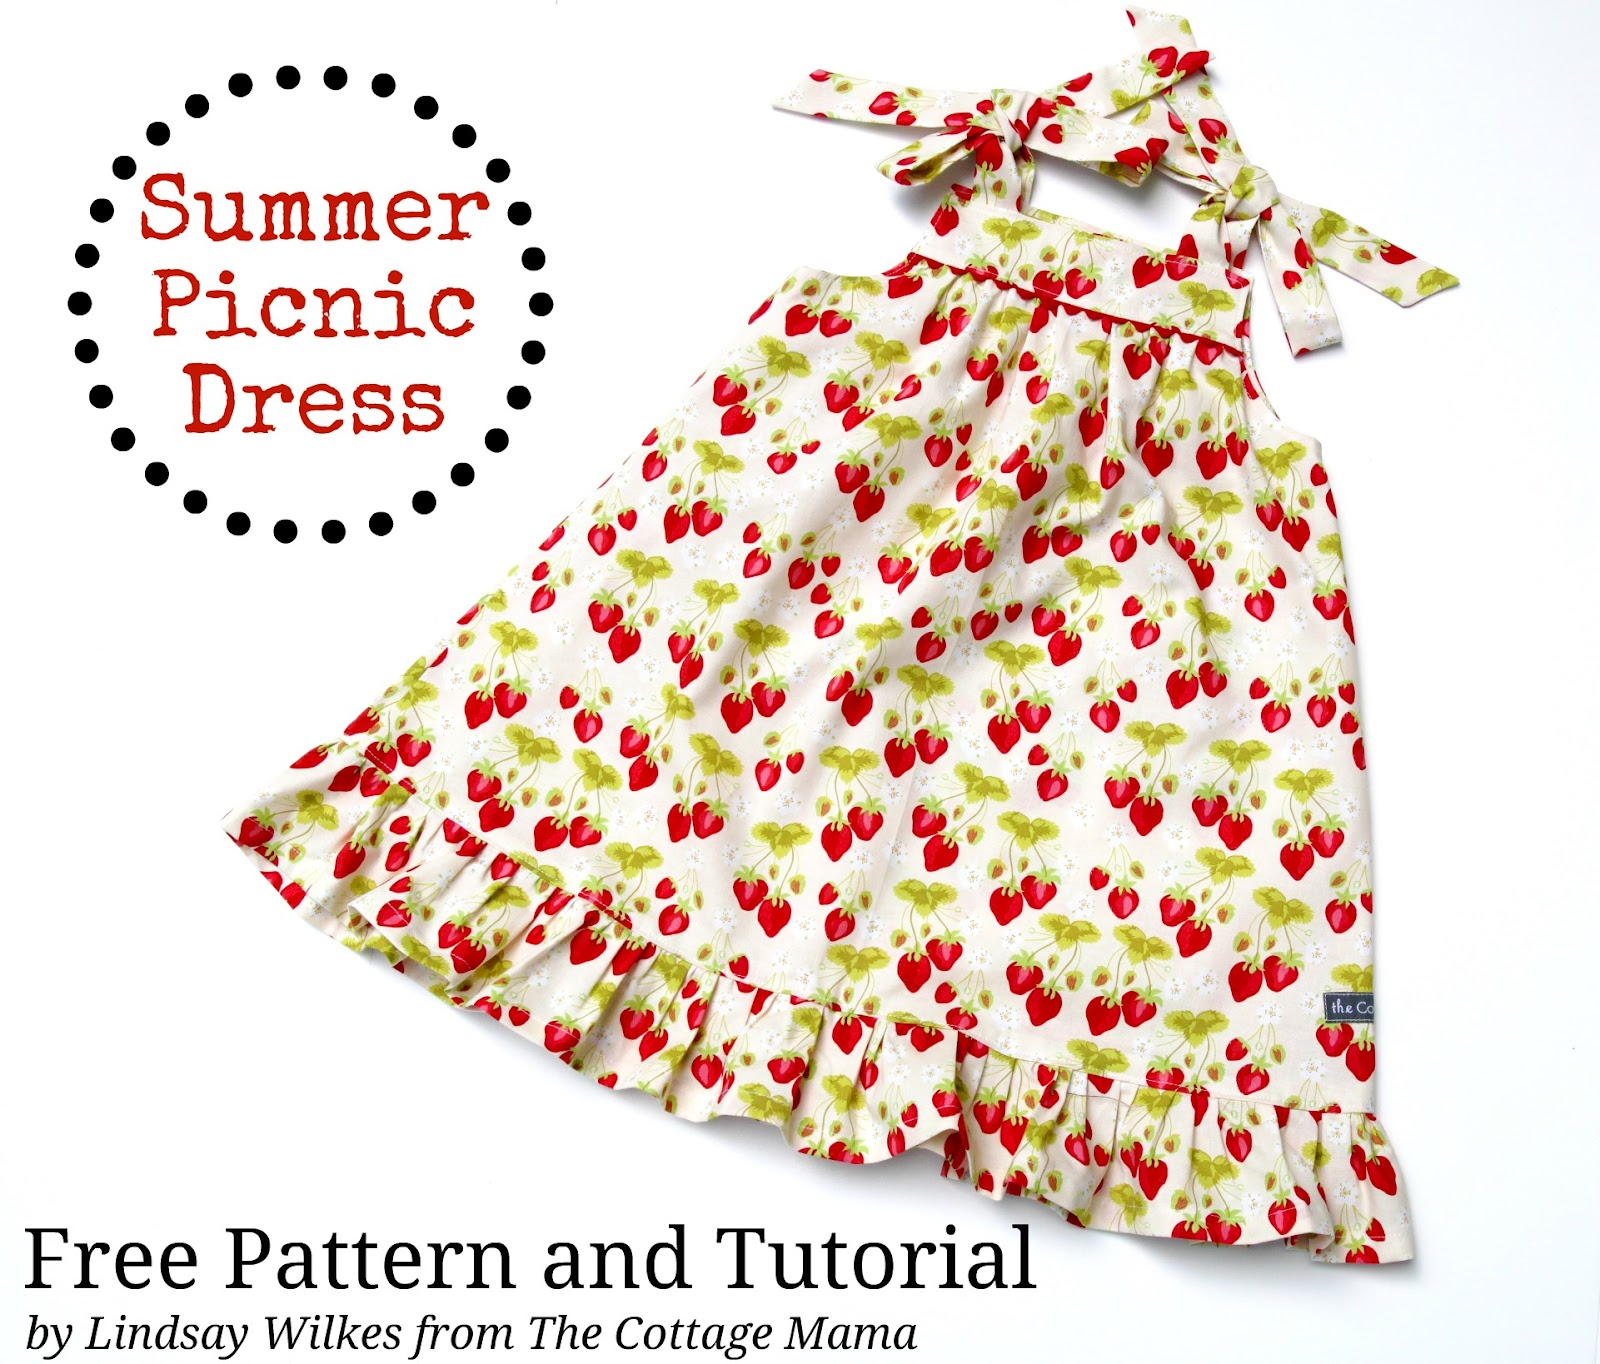 Summer Picnic Dress ~ Free PDF Pattern and Tutorial - The Cottage Mama